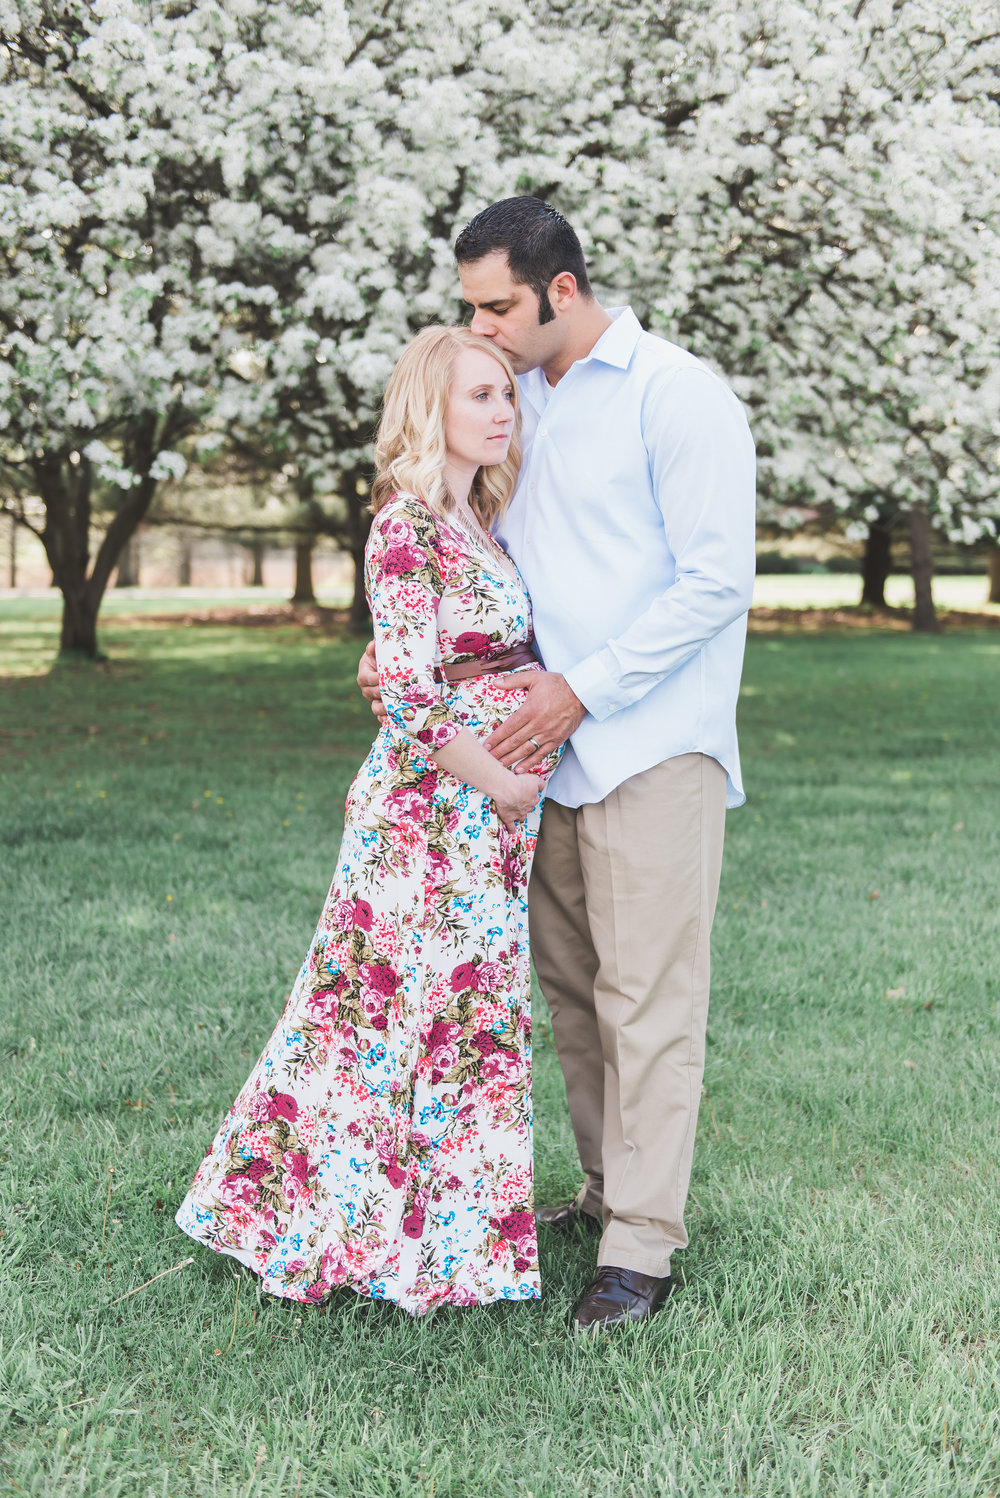 Maxi Dress Maternity Photos